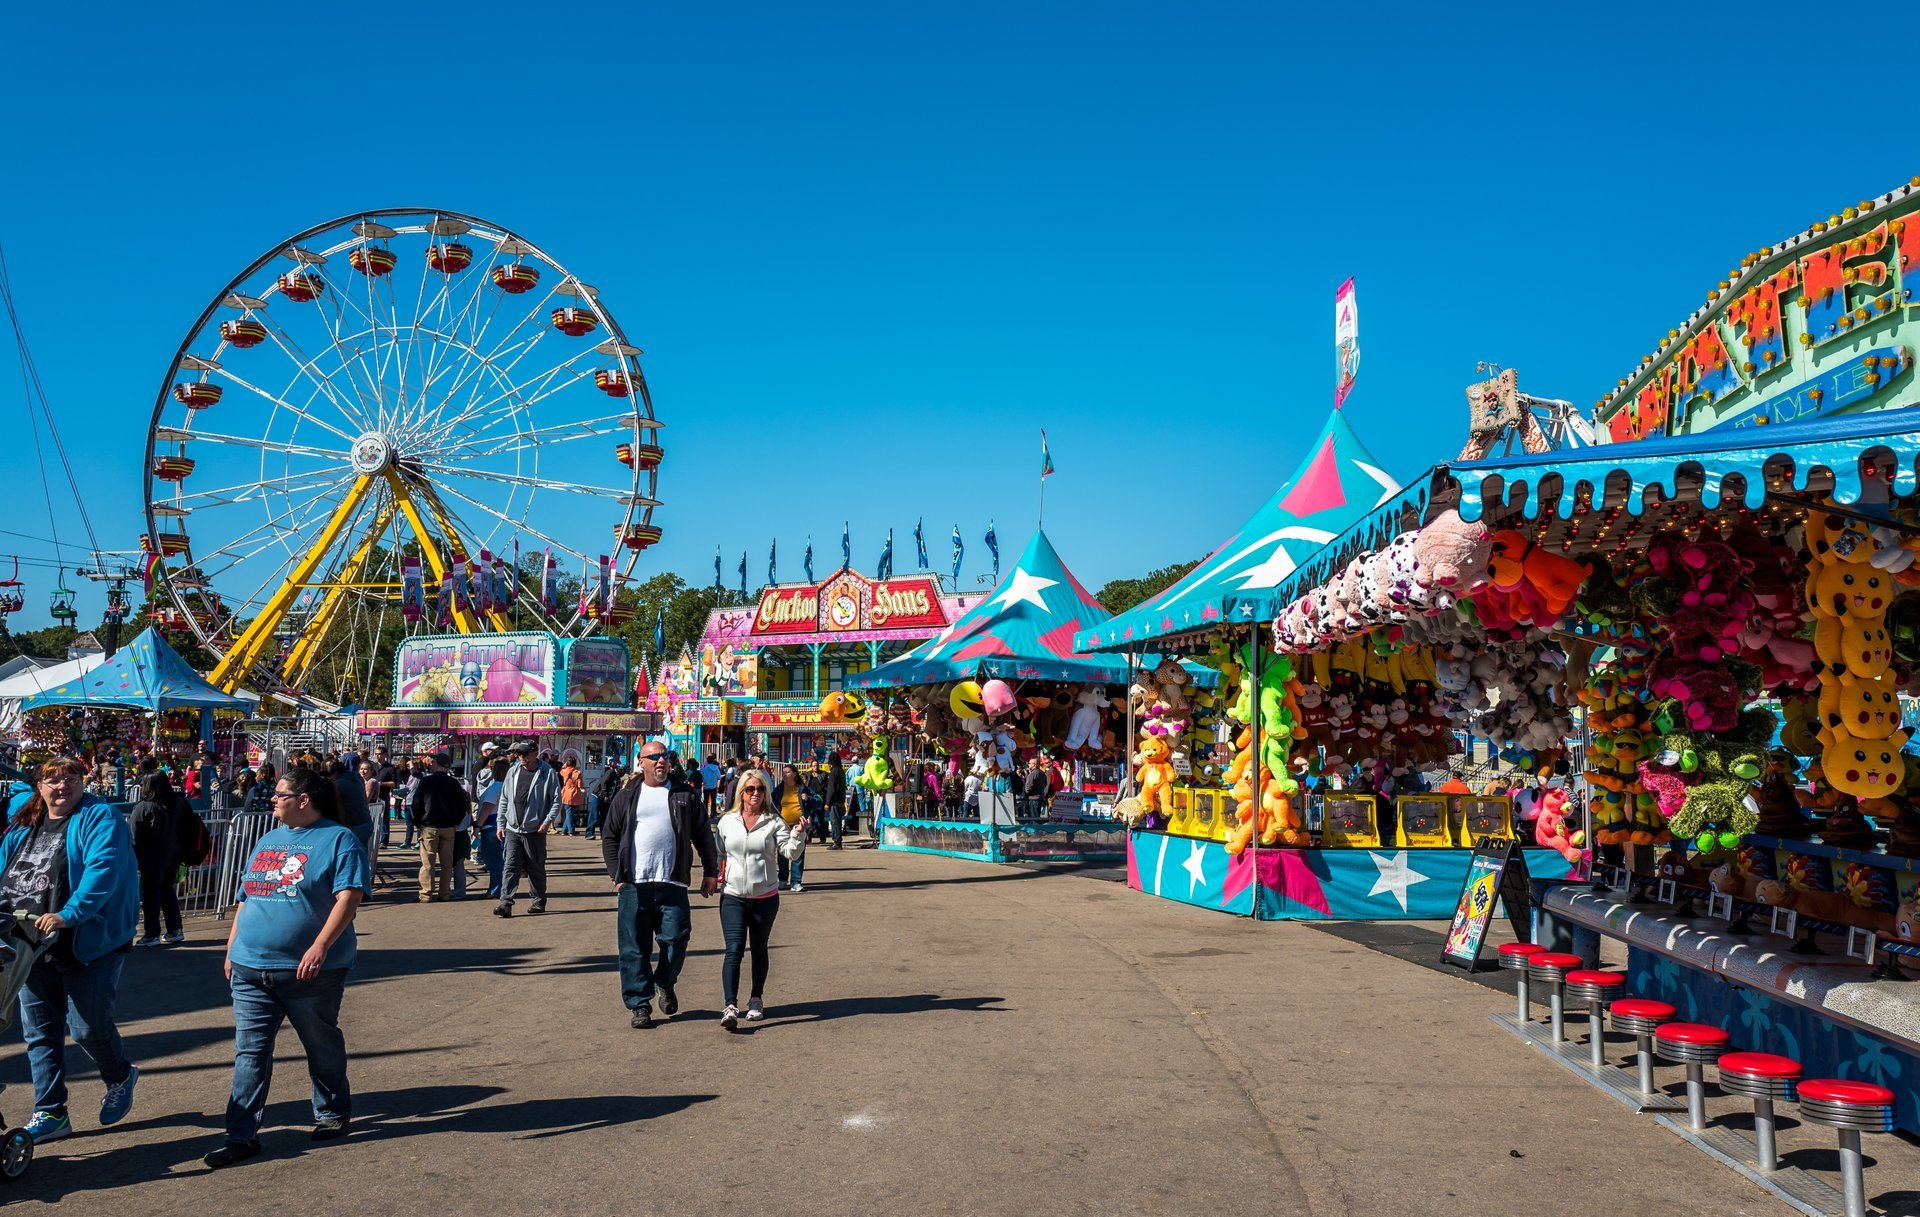 North Carolina State Fair in North Carolina 2020 - Best Time